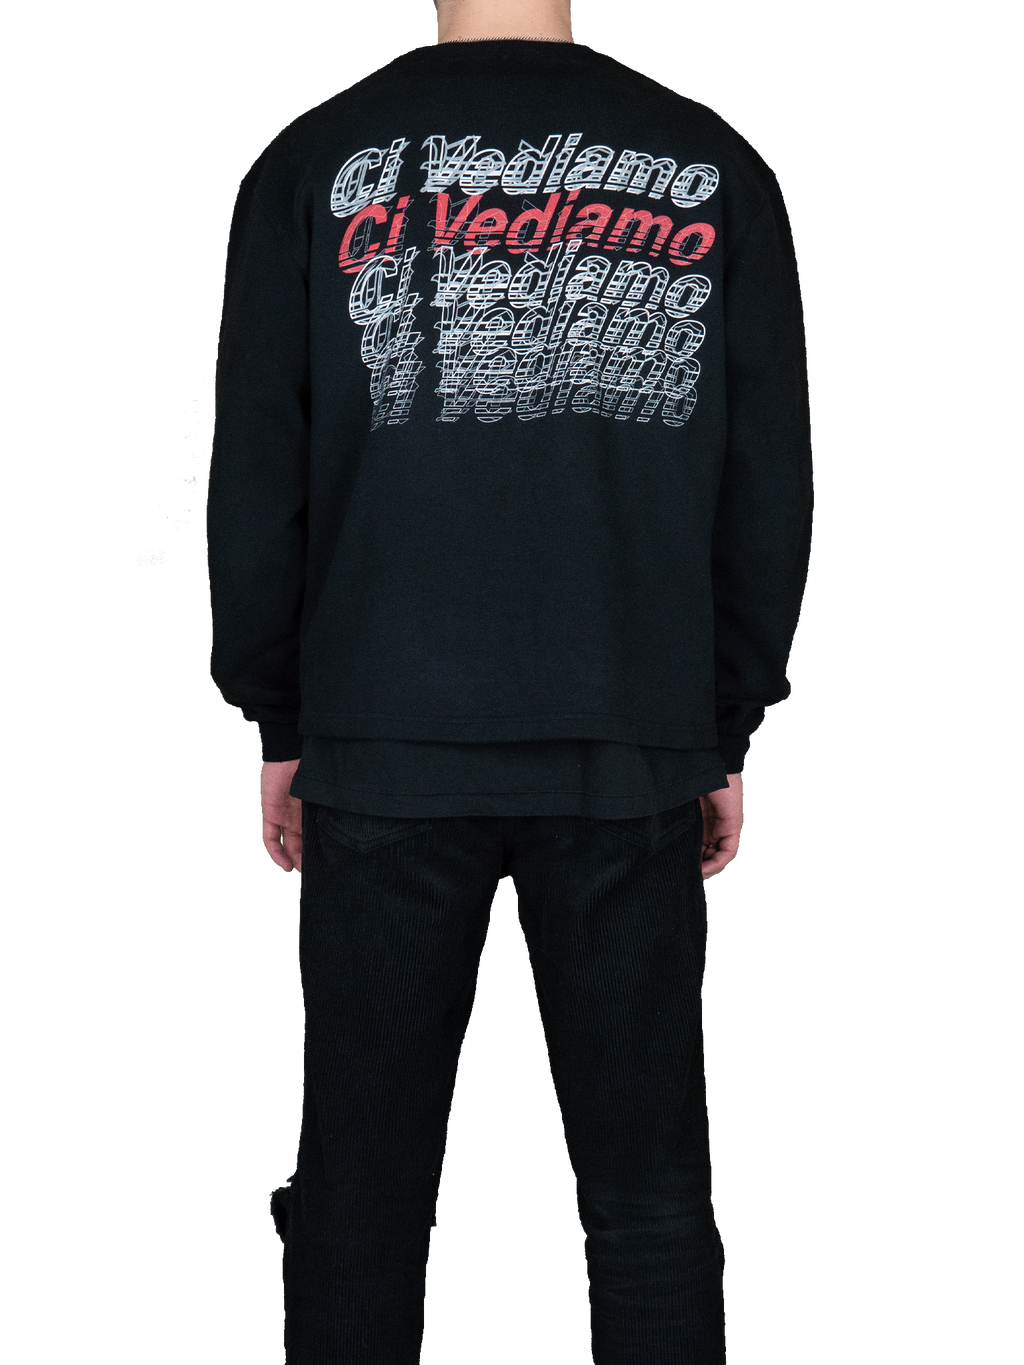 Printed Oversized Sweatshirt Black MGR Back